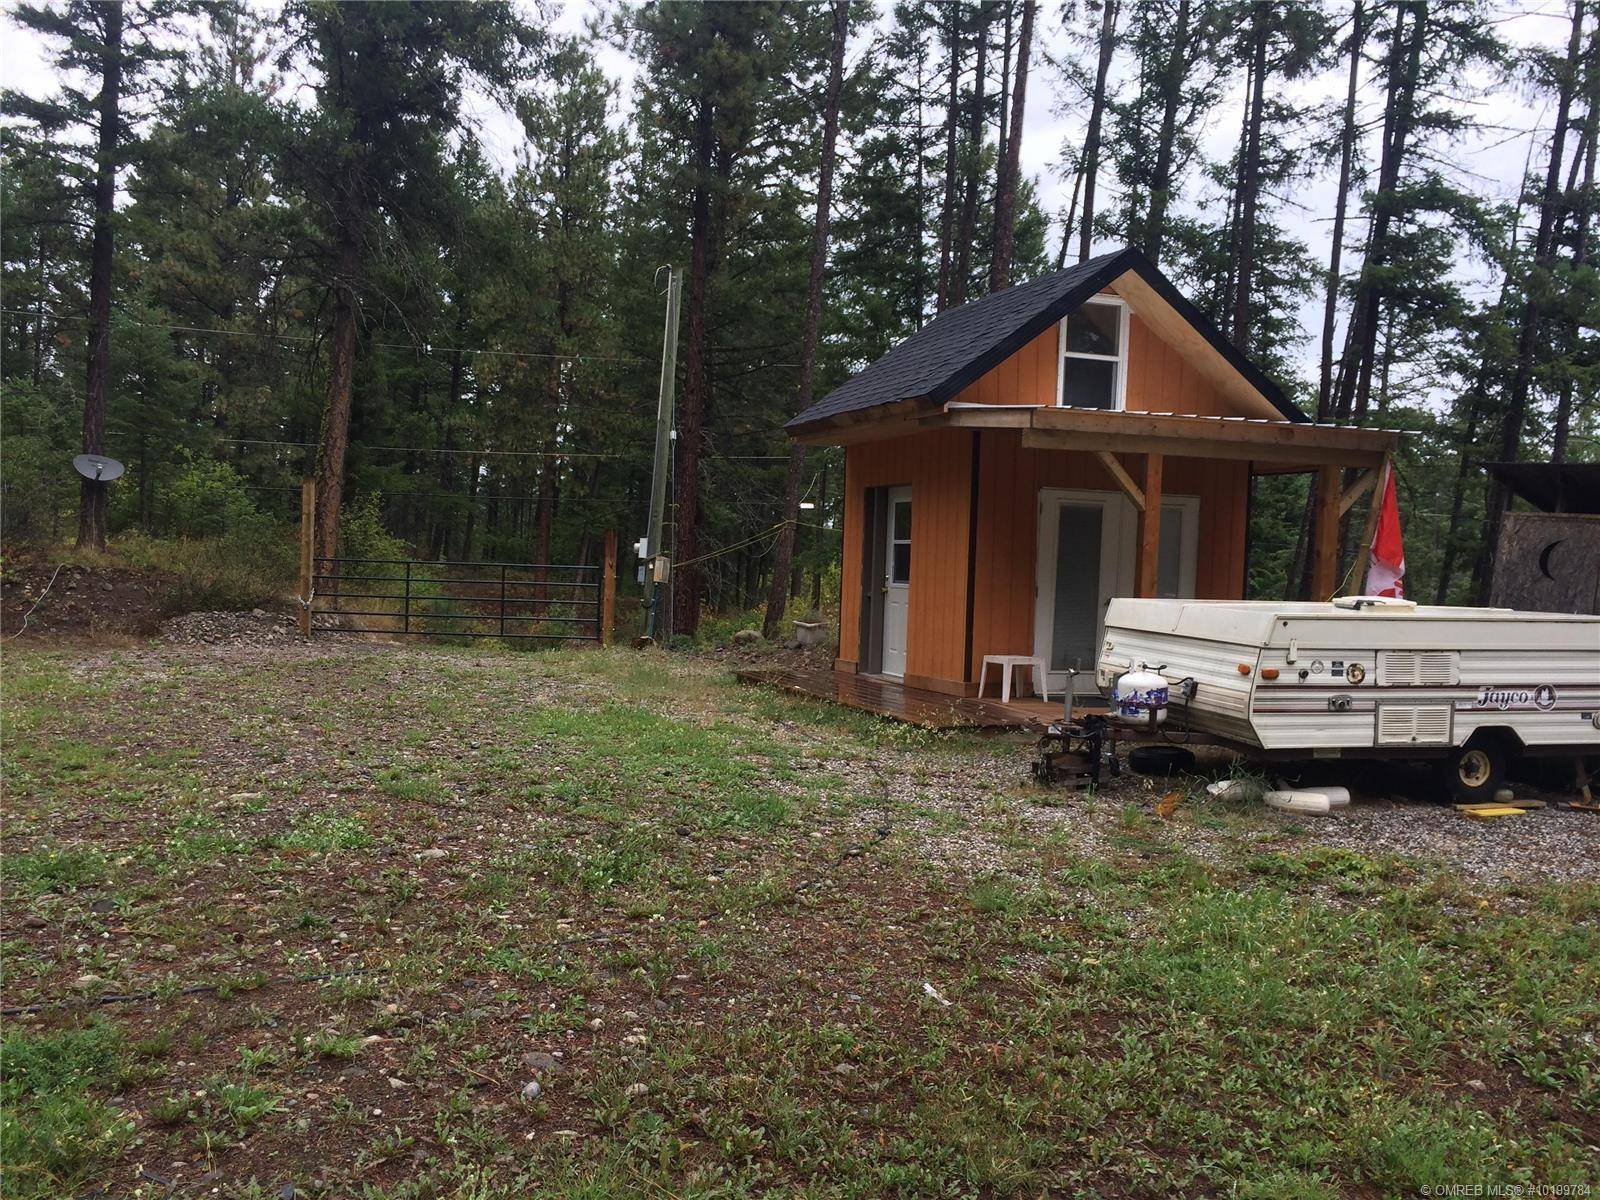 Home for sale at 851 Firwood Rd Fintry British Columbia - MLS: 10199784